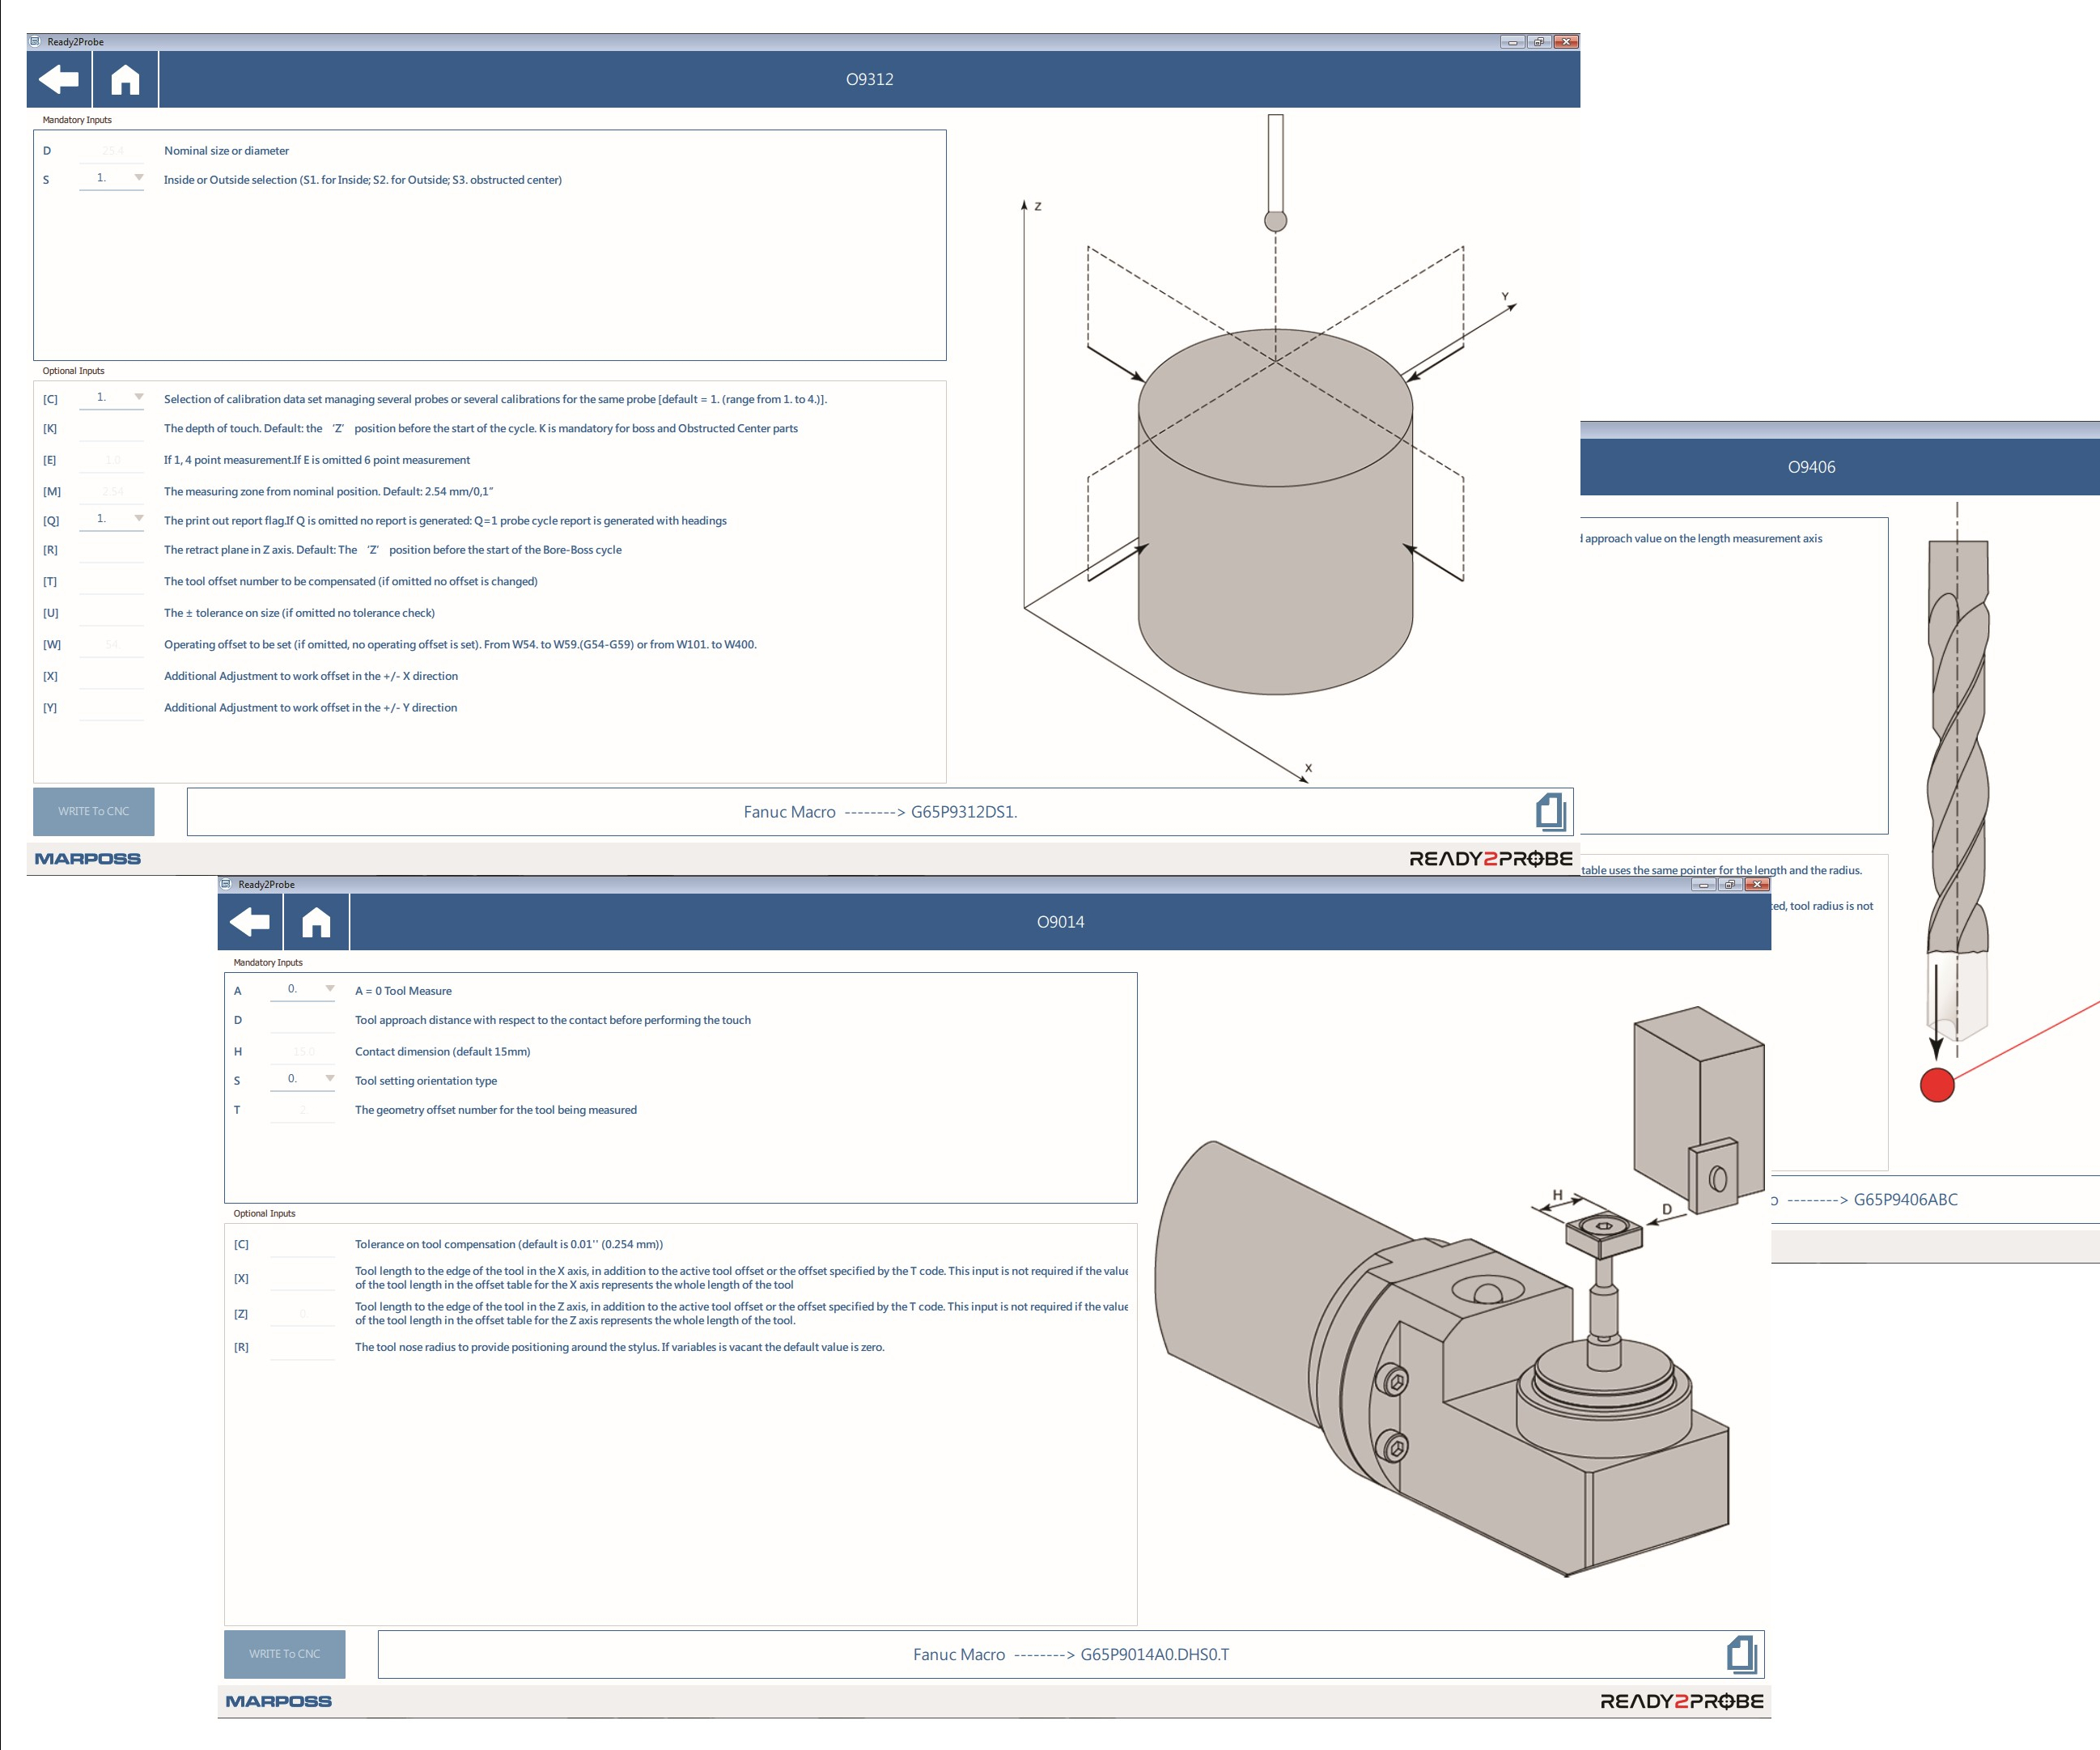 Marposs Corp., Ready2Probe software application